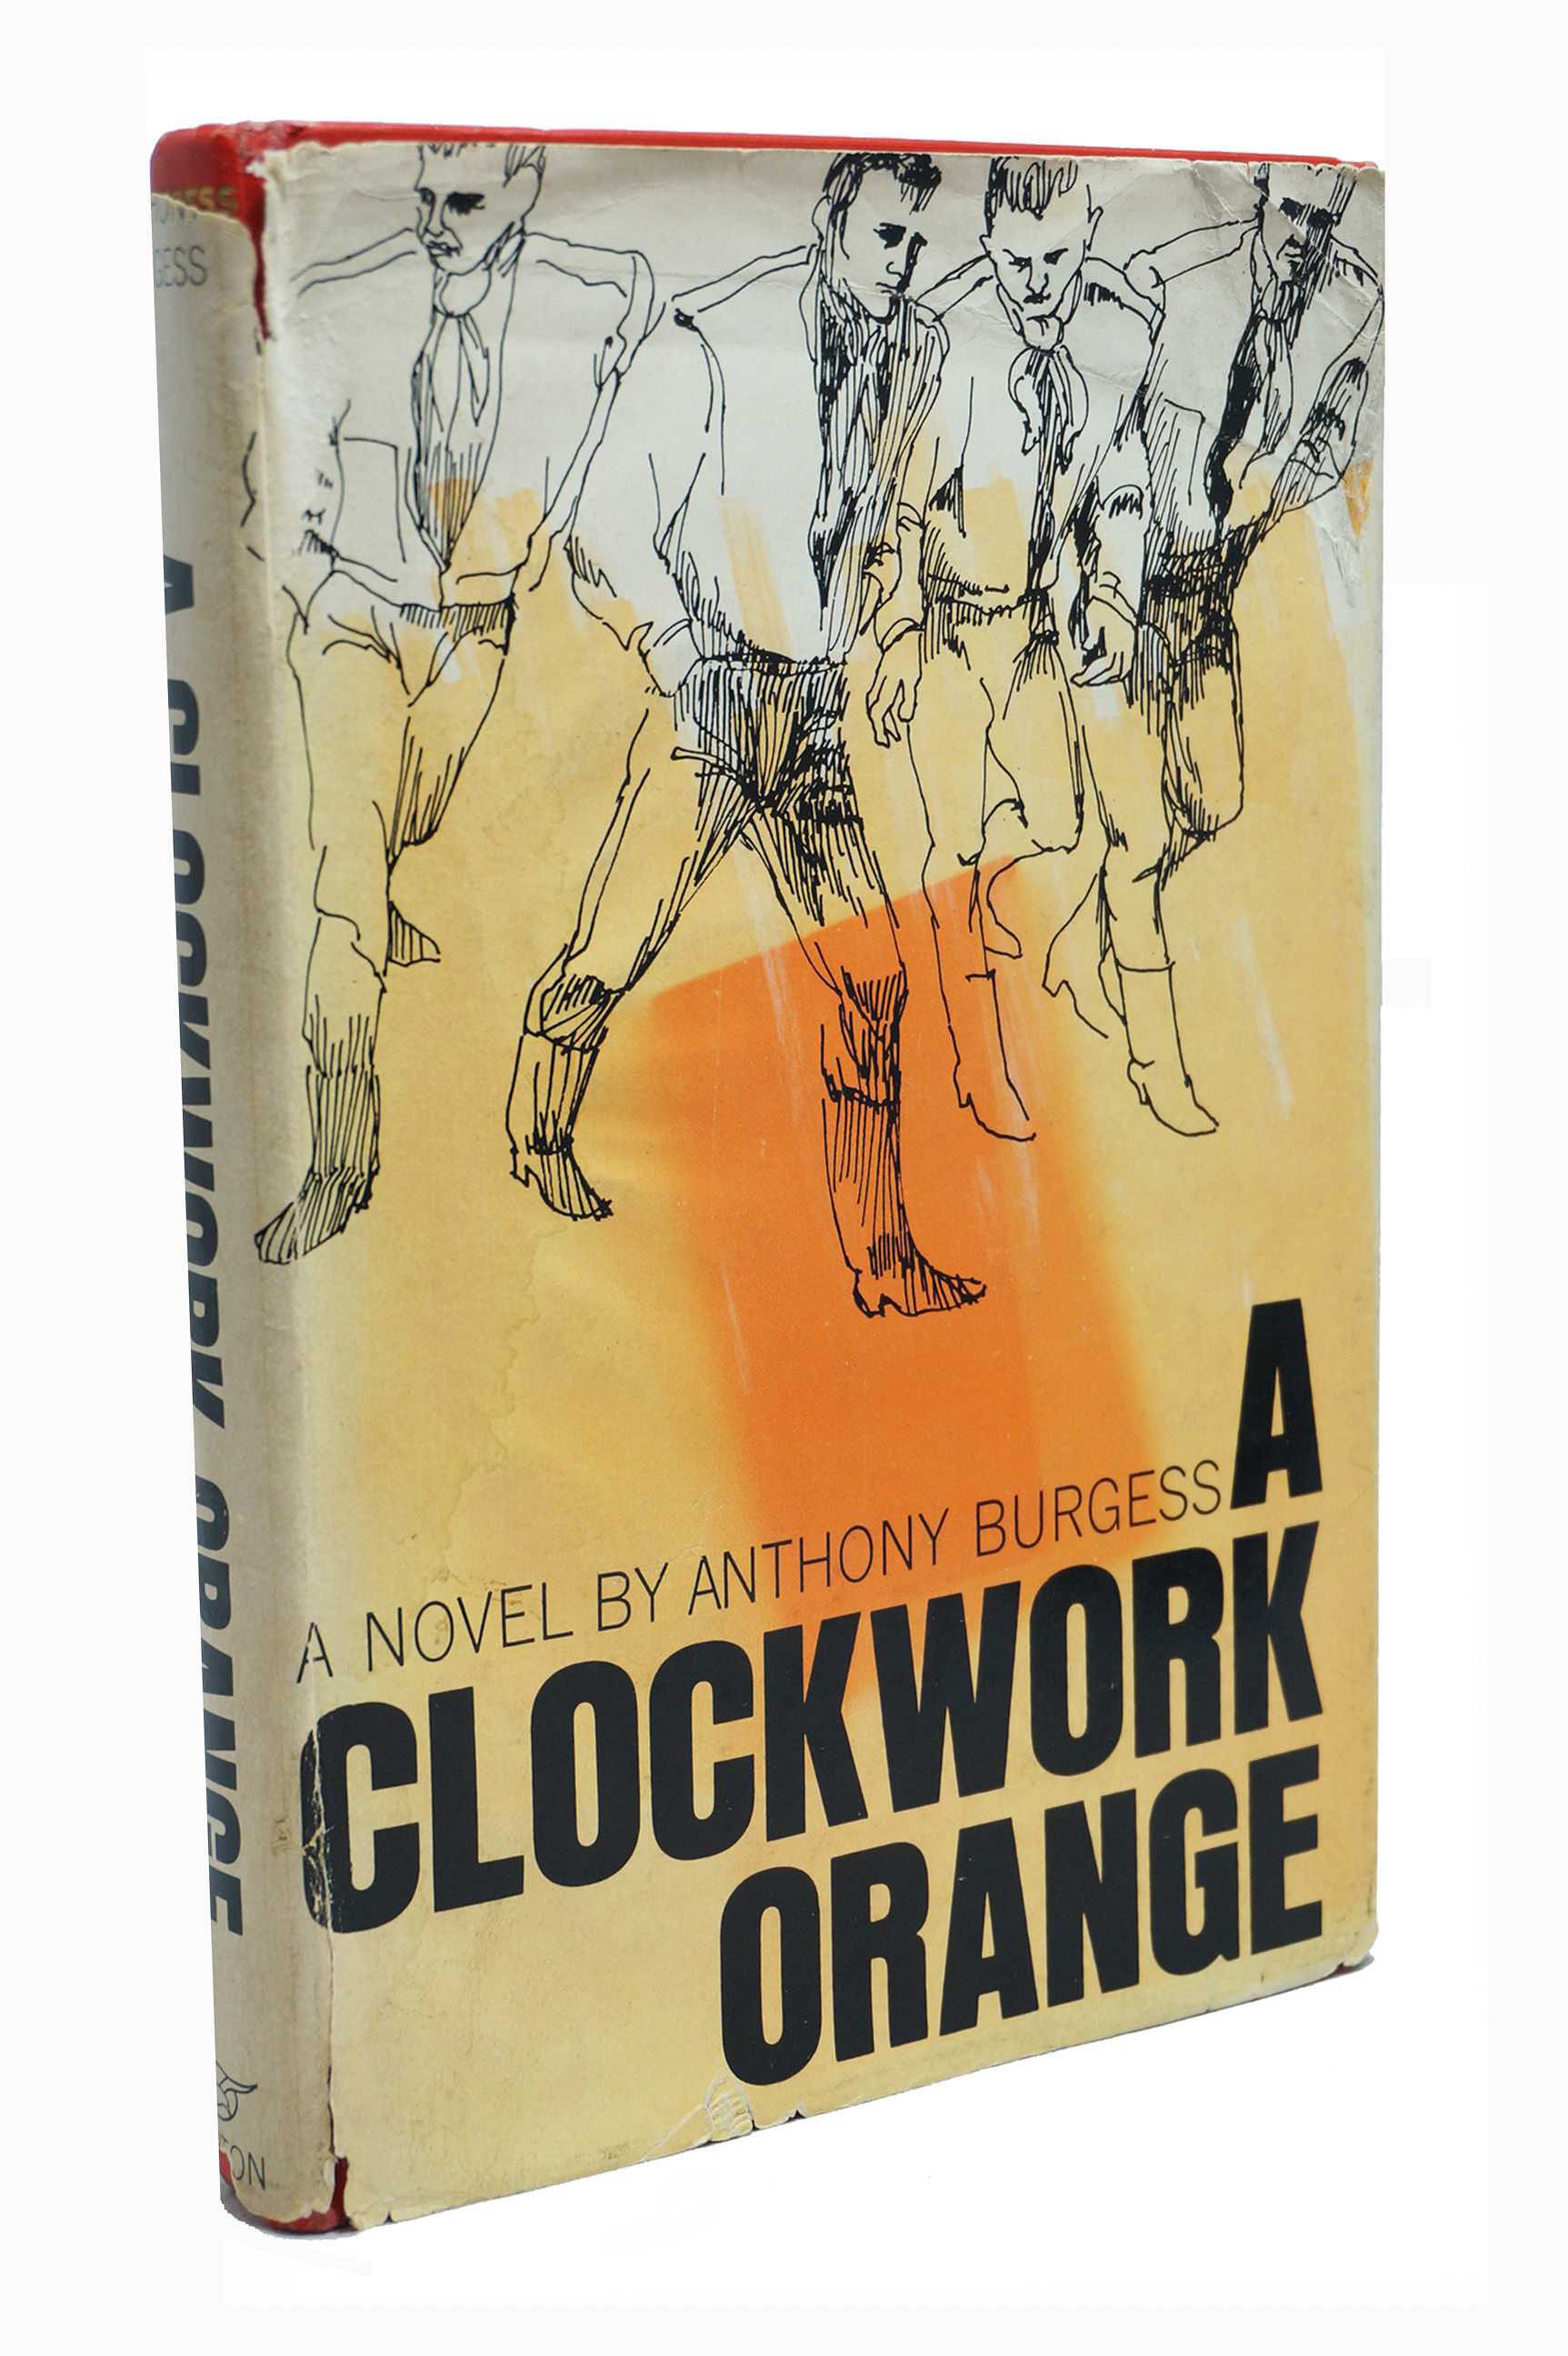 a summary of the novel a clockwork orange by anthony burgess A clockwork orange,this is a free study guide to a clockwork orange which was written by anthony burgess the vision of youth culture in a clockwork orange is almost entirely negative, a horrifying extreme of the tendencies of young people in the early 1960s, when burgess wrote his novel the.